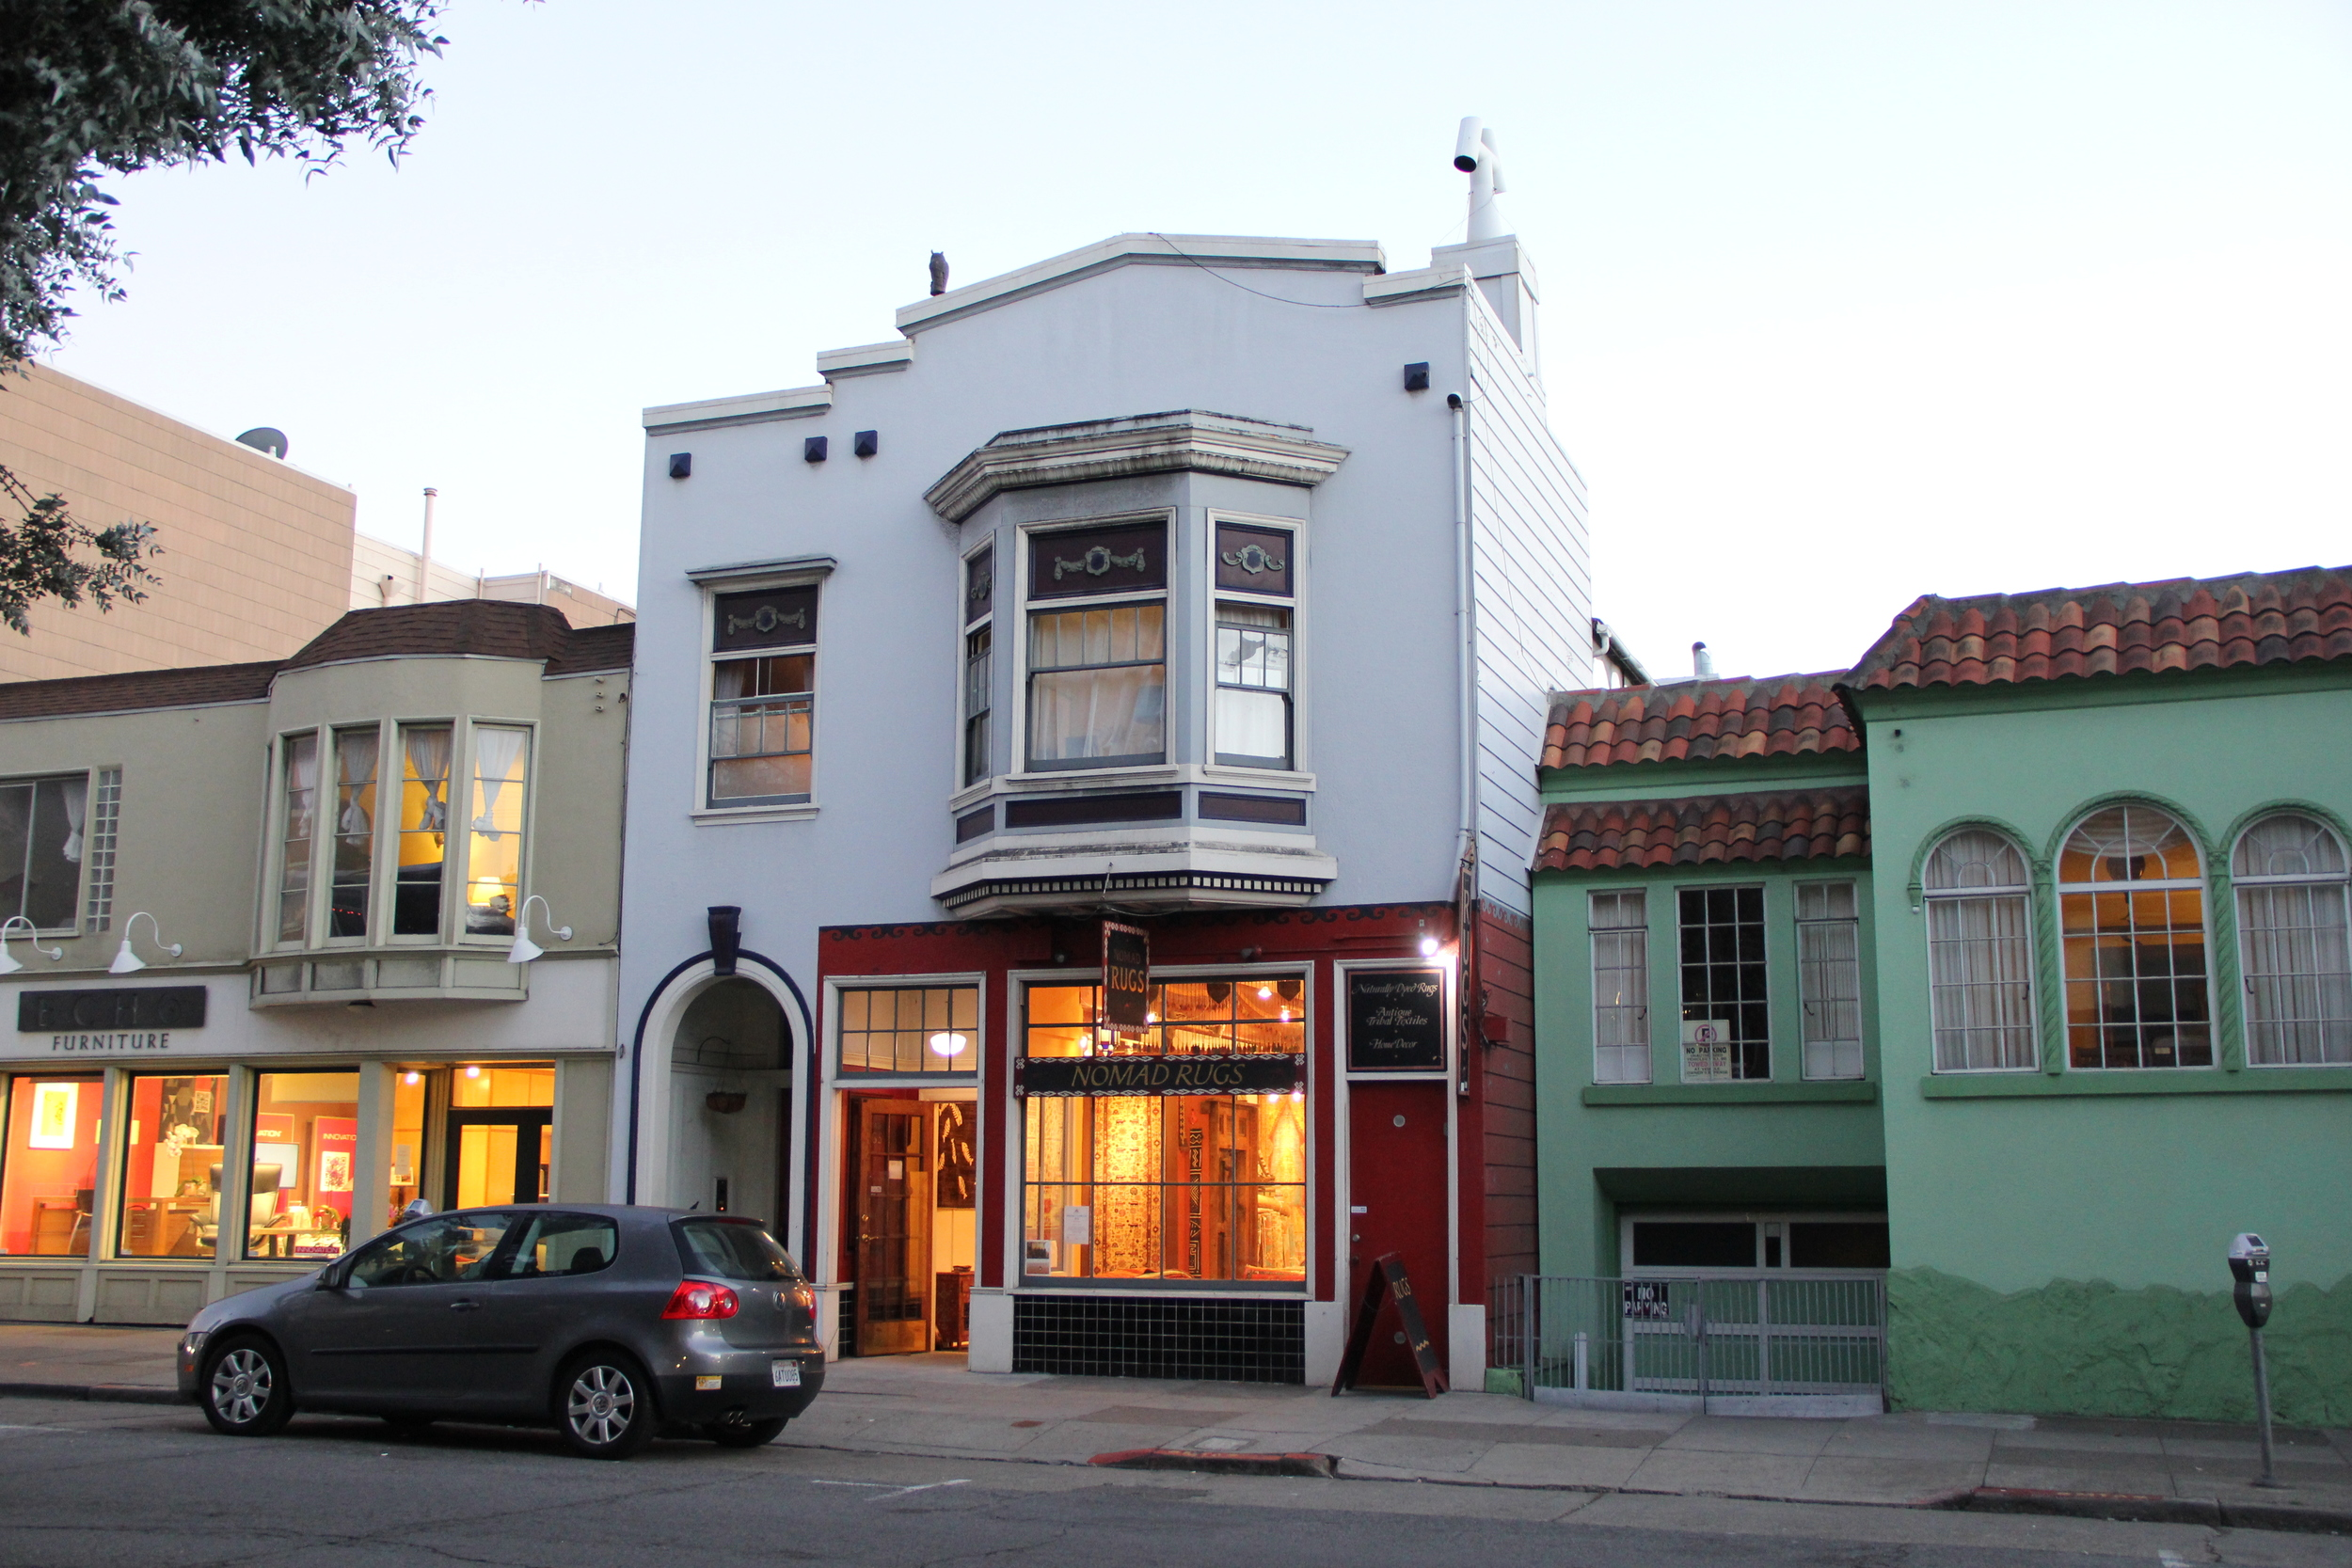 24th Street, Noe Valley, San Francisco | Beyond Ordinary Guides